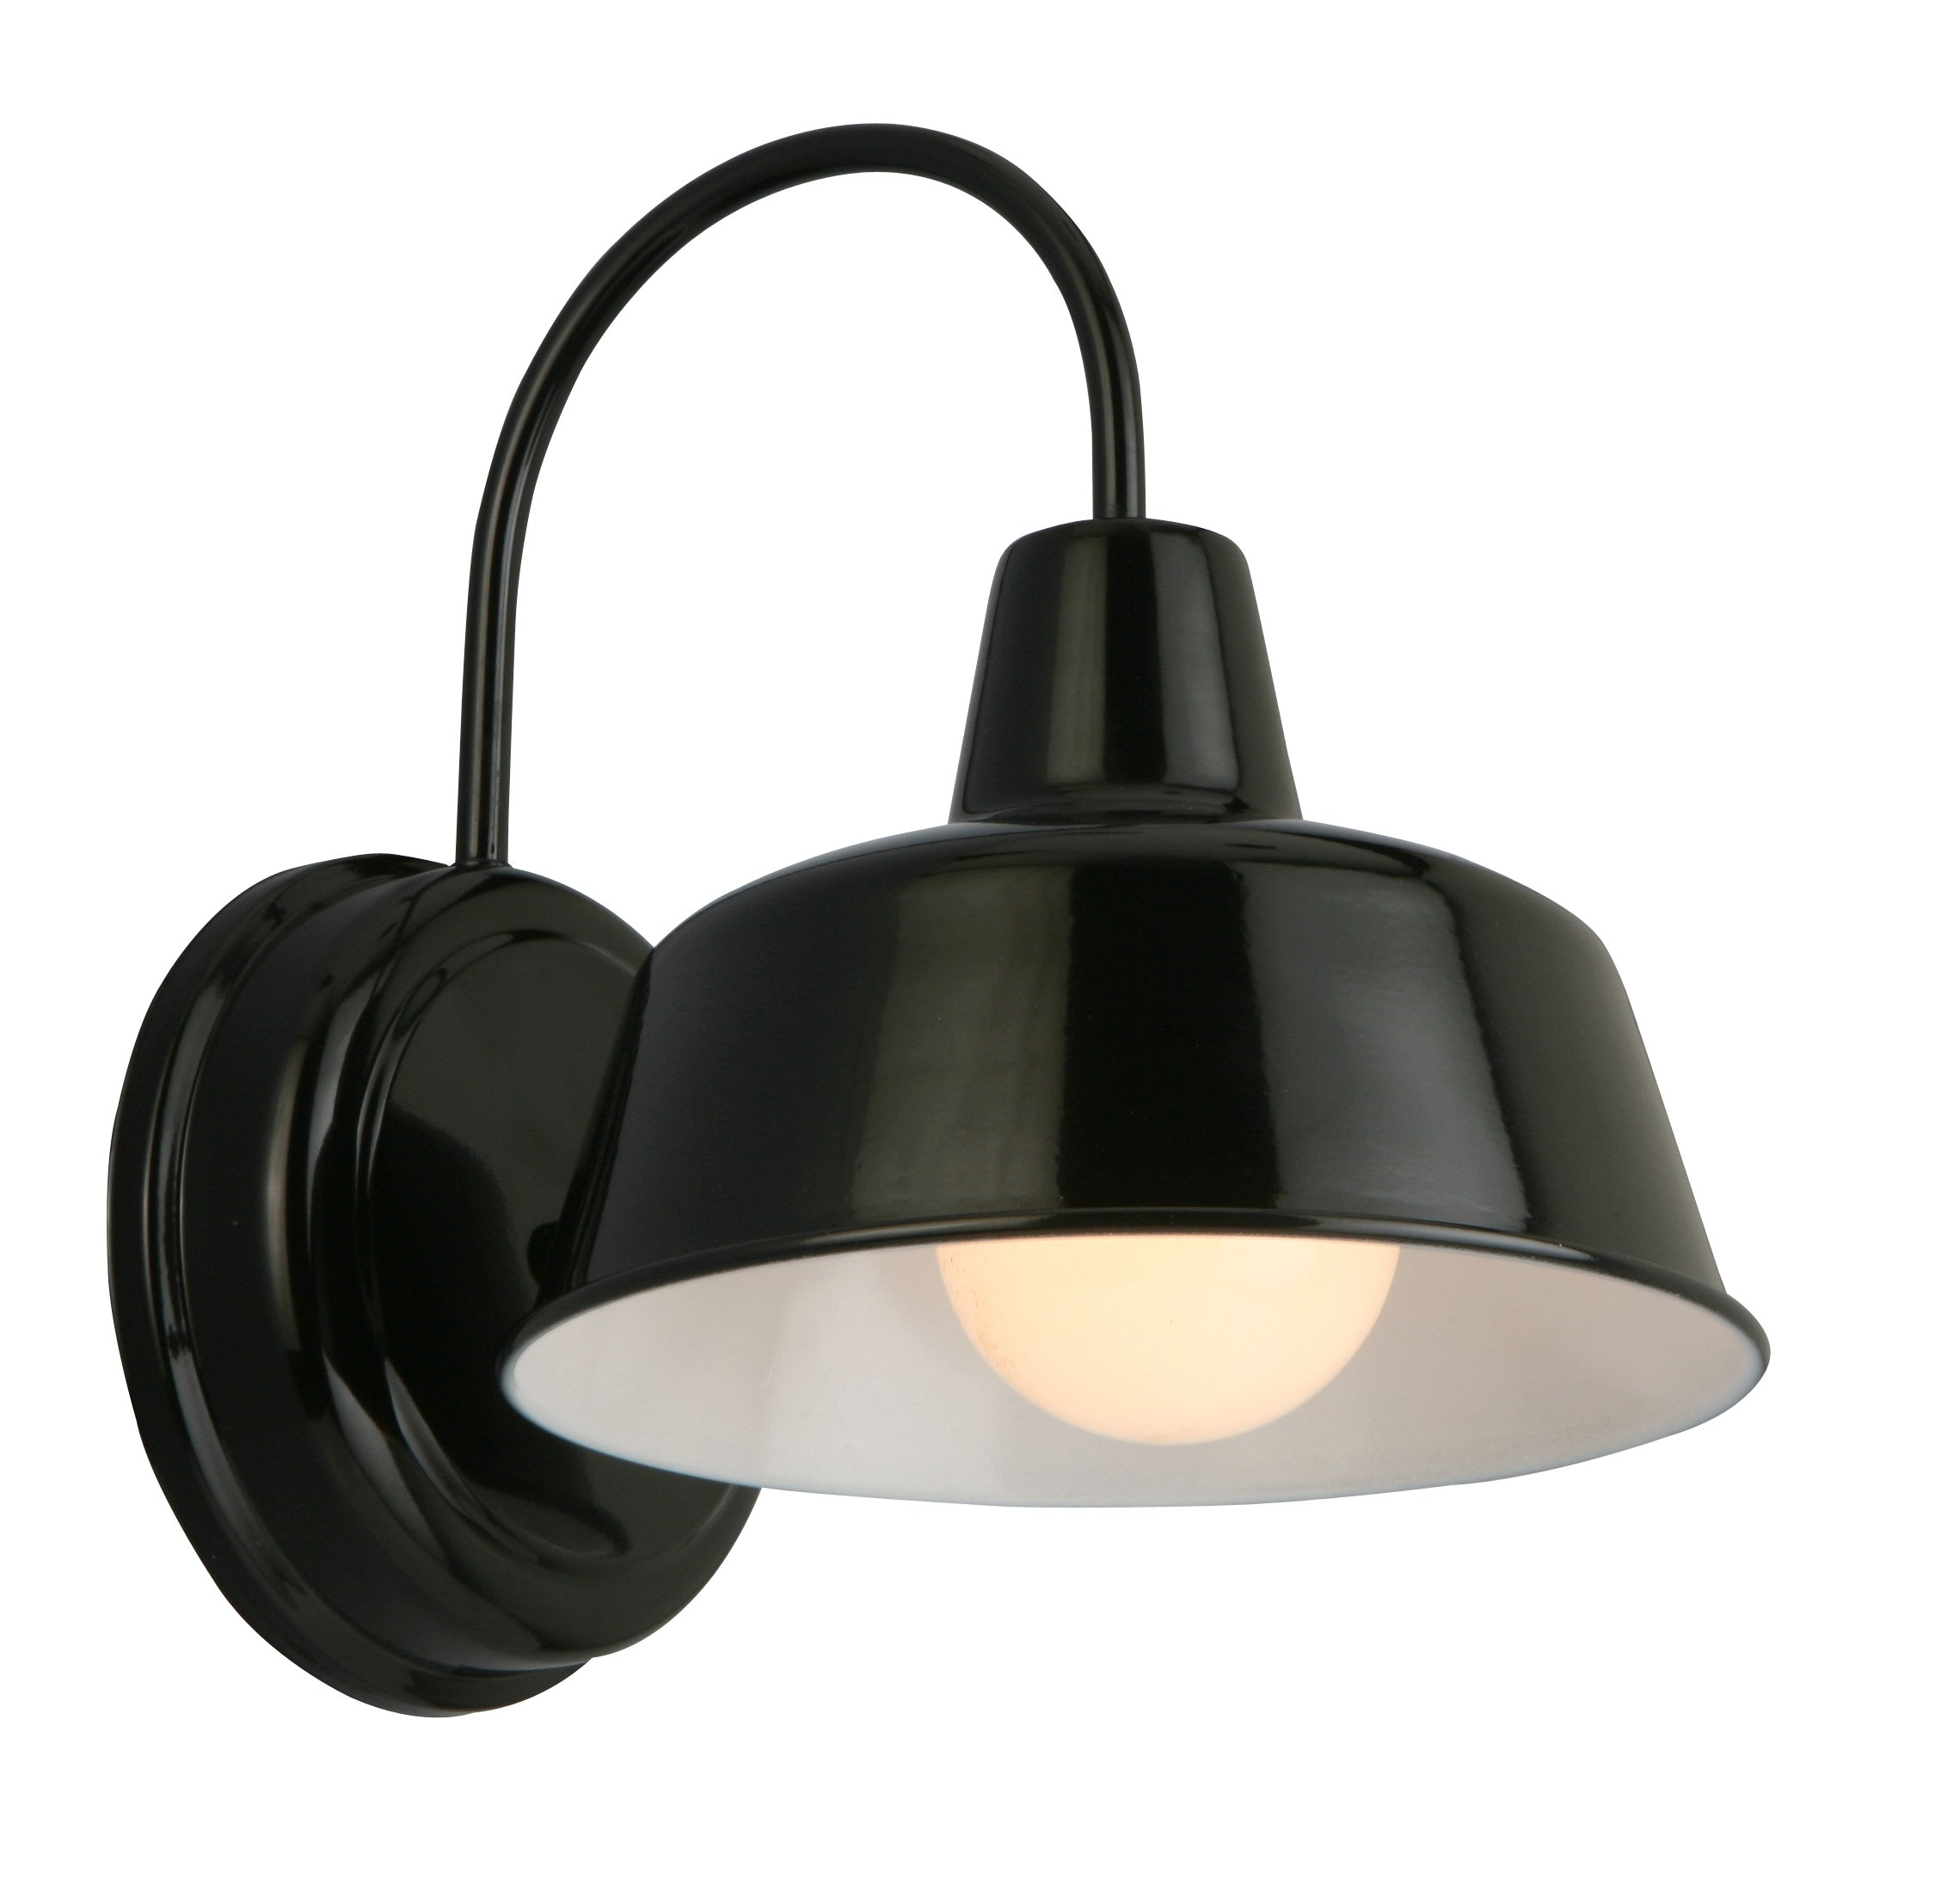 Design House 579367 Mason 1 Indoor/Outdoor Wall Light, 8'', Black